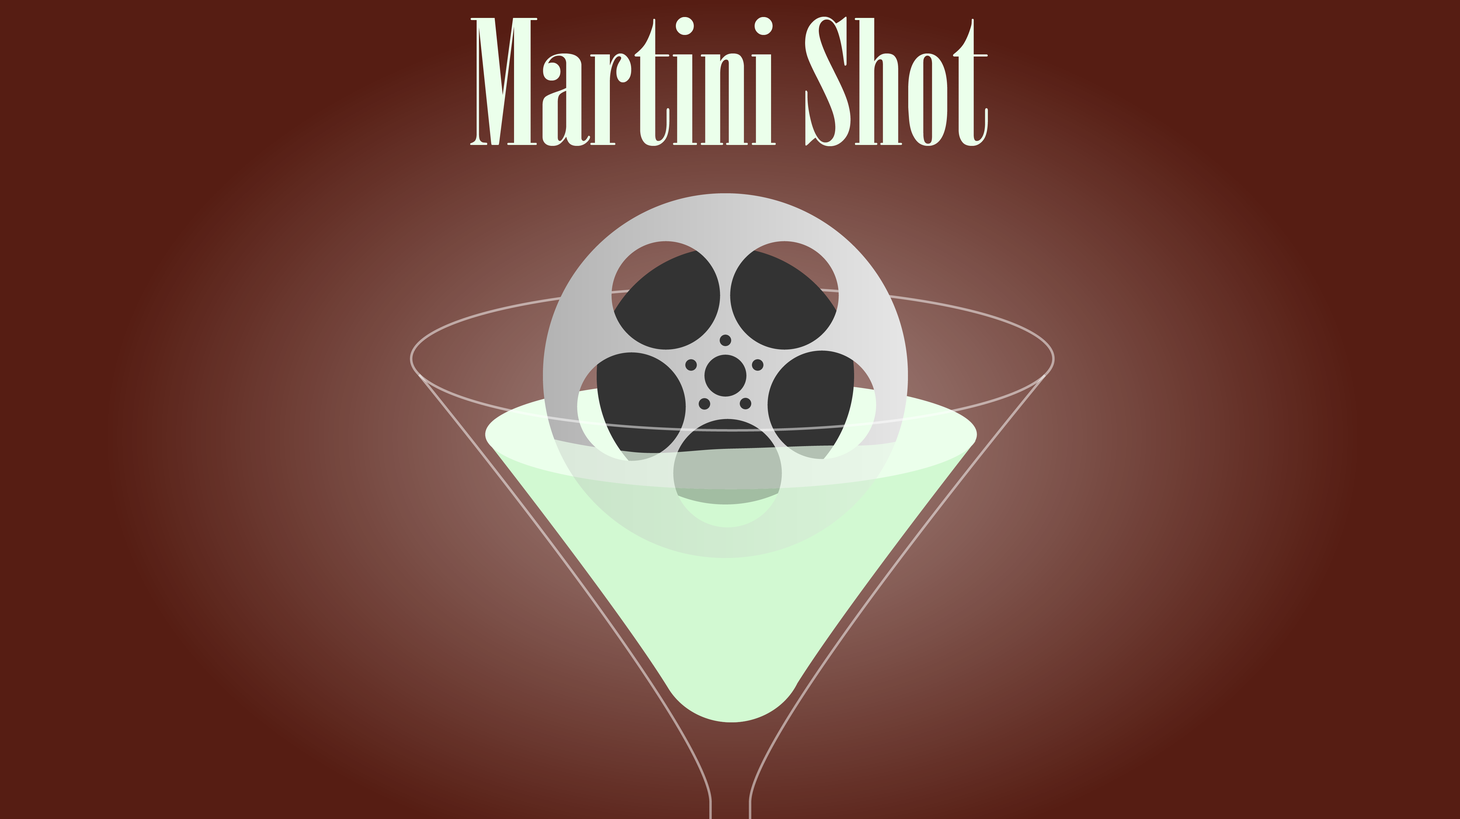 This is Rob Long and on today's Martini Shot I tell the story of the movie star, the eighty dollar plumber, and the joys of a normal life. It all ties together, I promise.